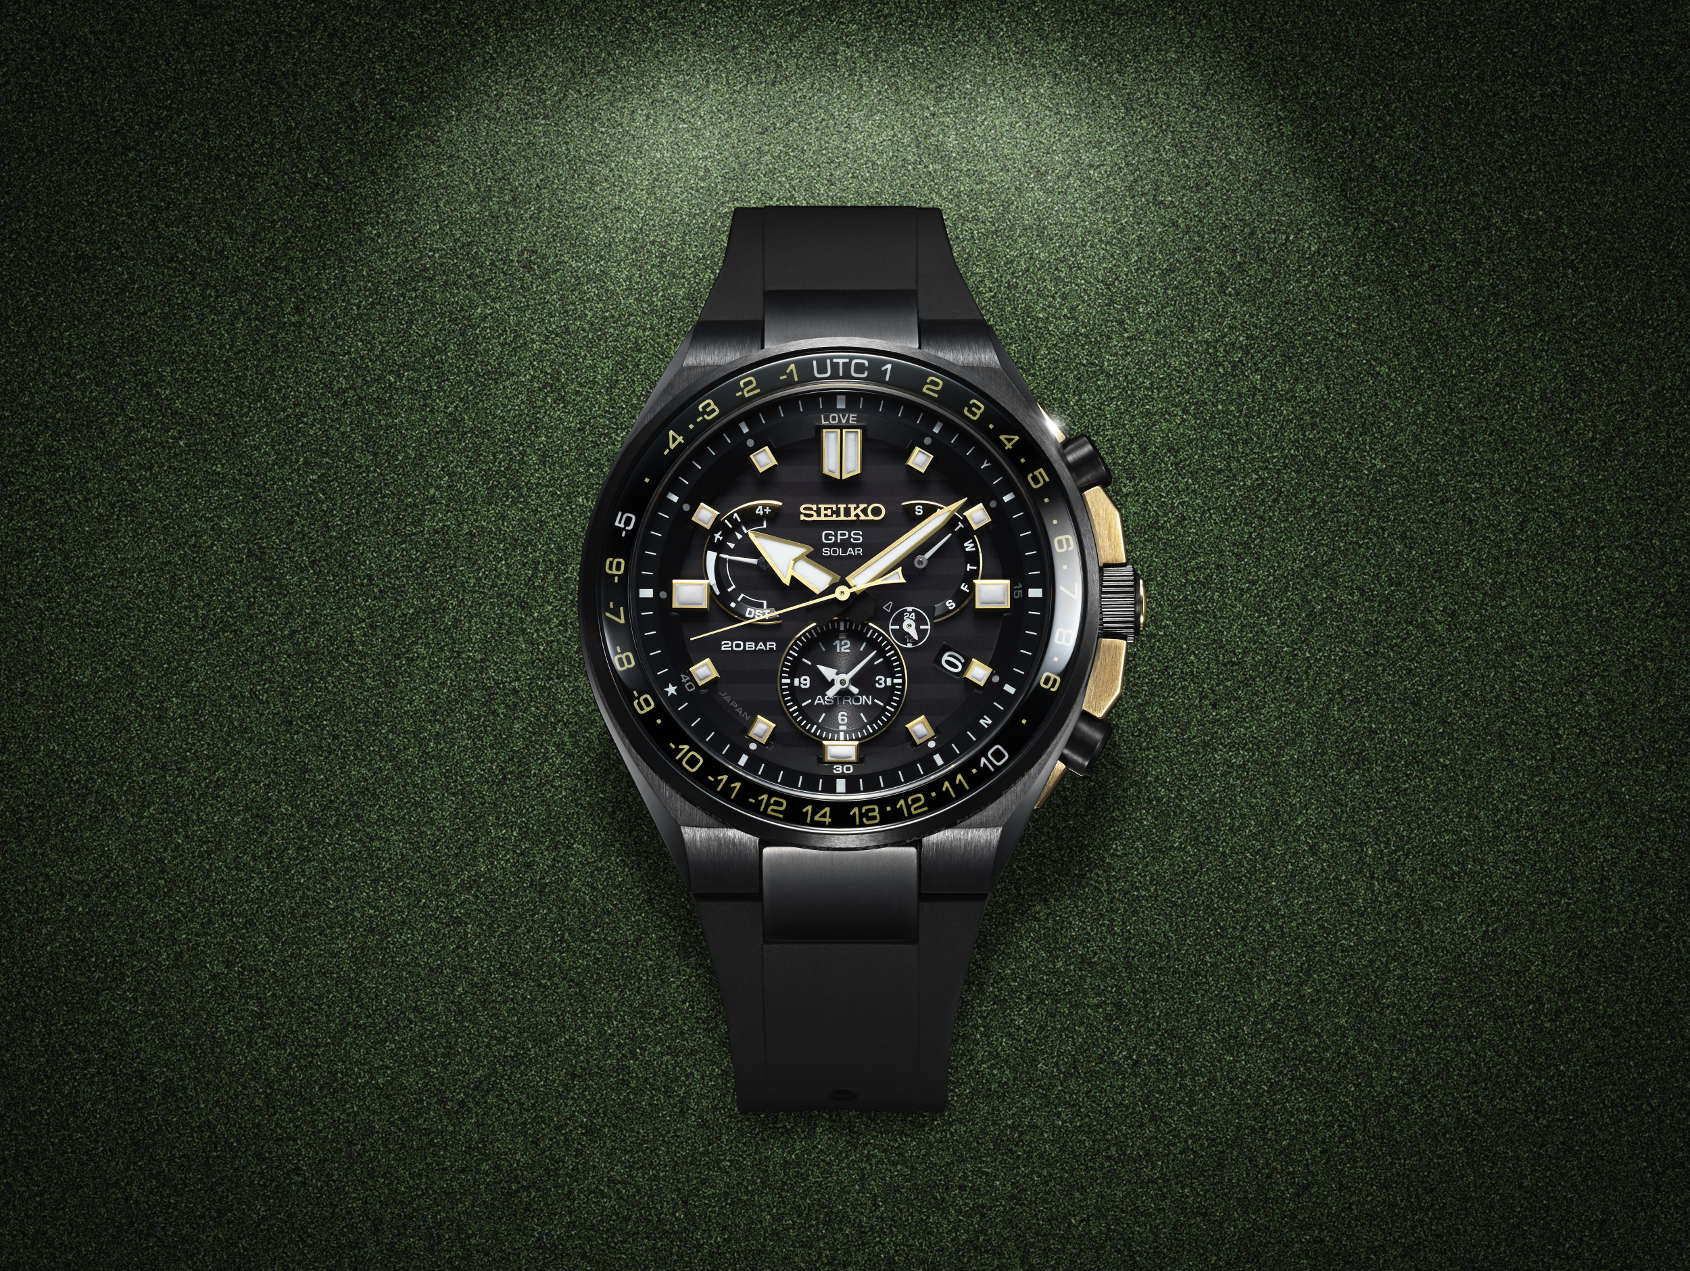 Seiko Astron Introducing The Seiko Astron Novak Djokovic Limited Edition